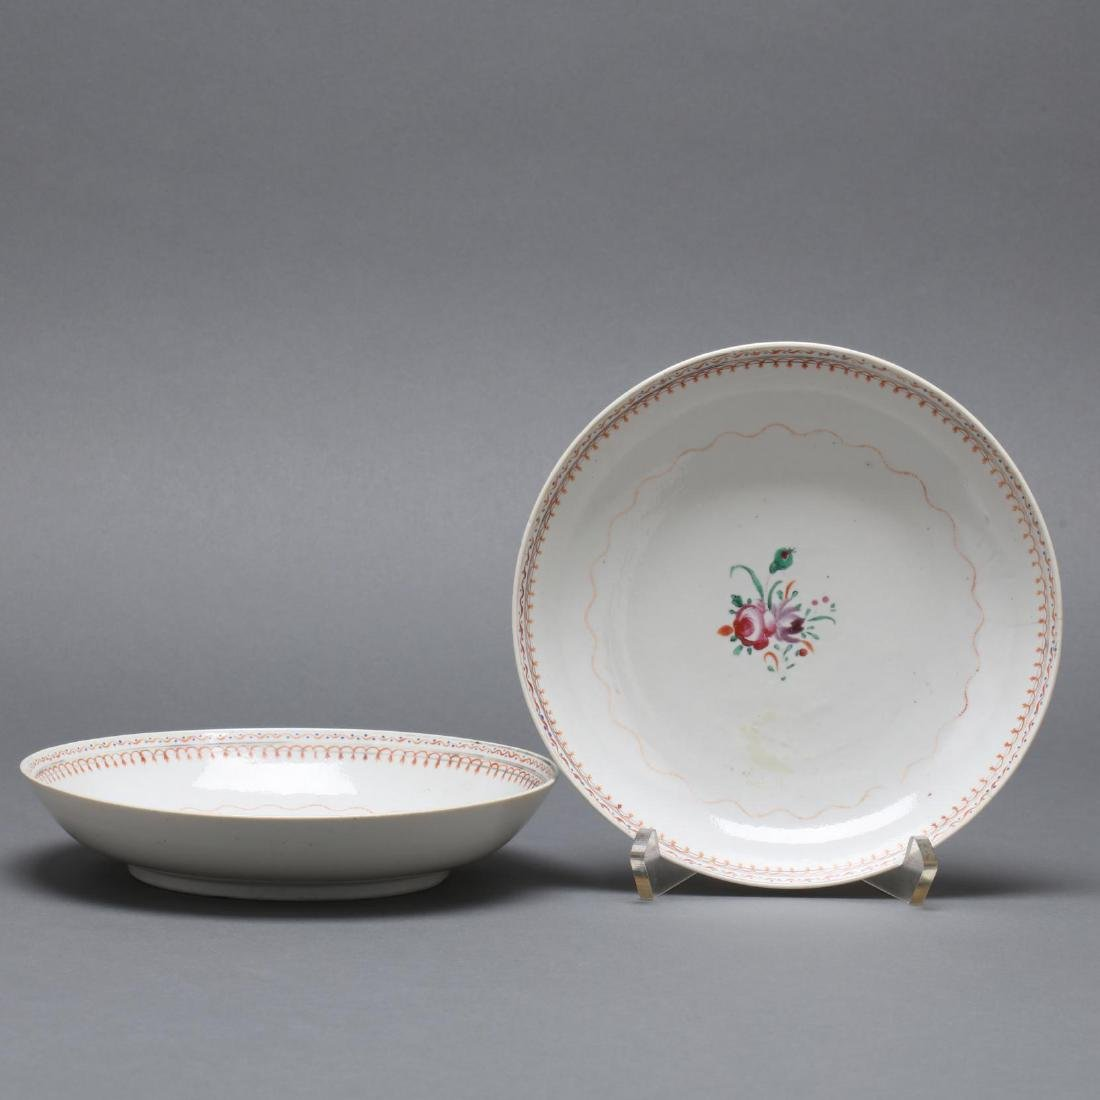 Pair of Chinese Export Bowls